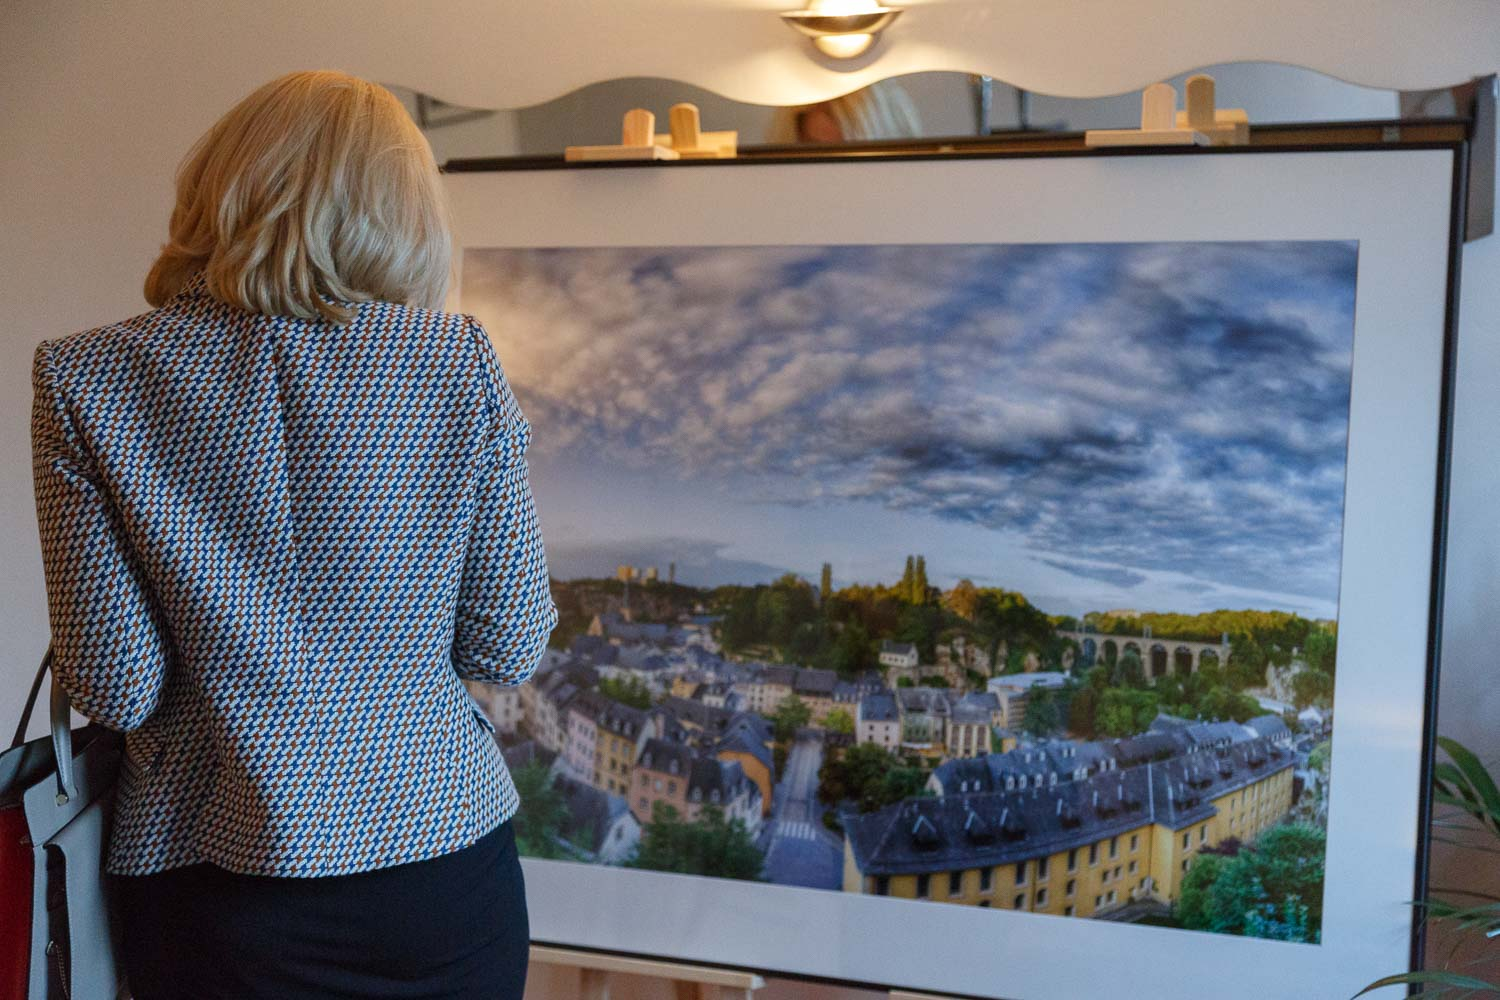 First solo exhibition by Luxembourg Landscape Photographer Christophe Van Biesen at the Brasserie Beim Siggy in Luxembourg City